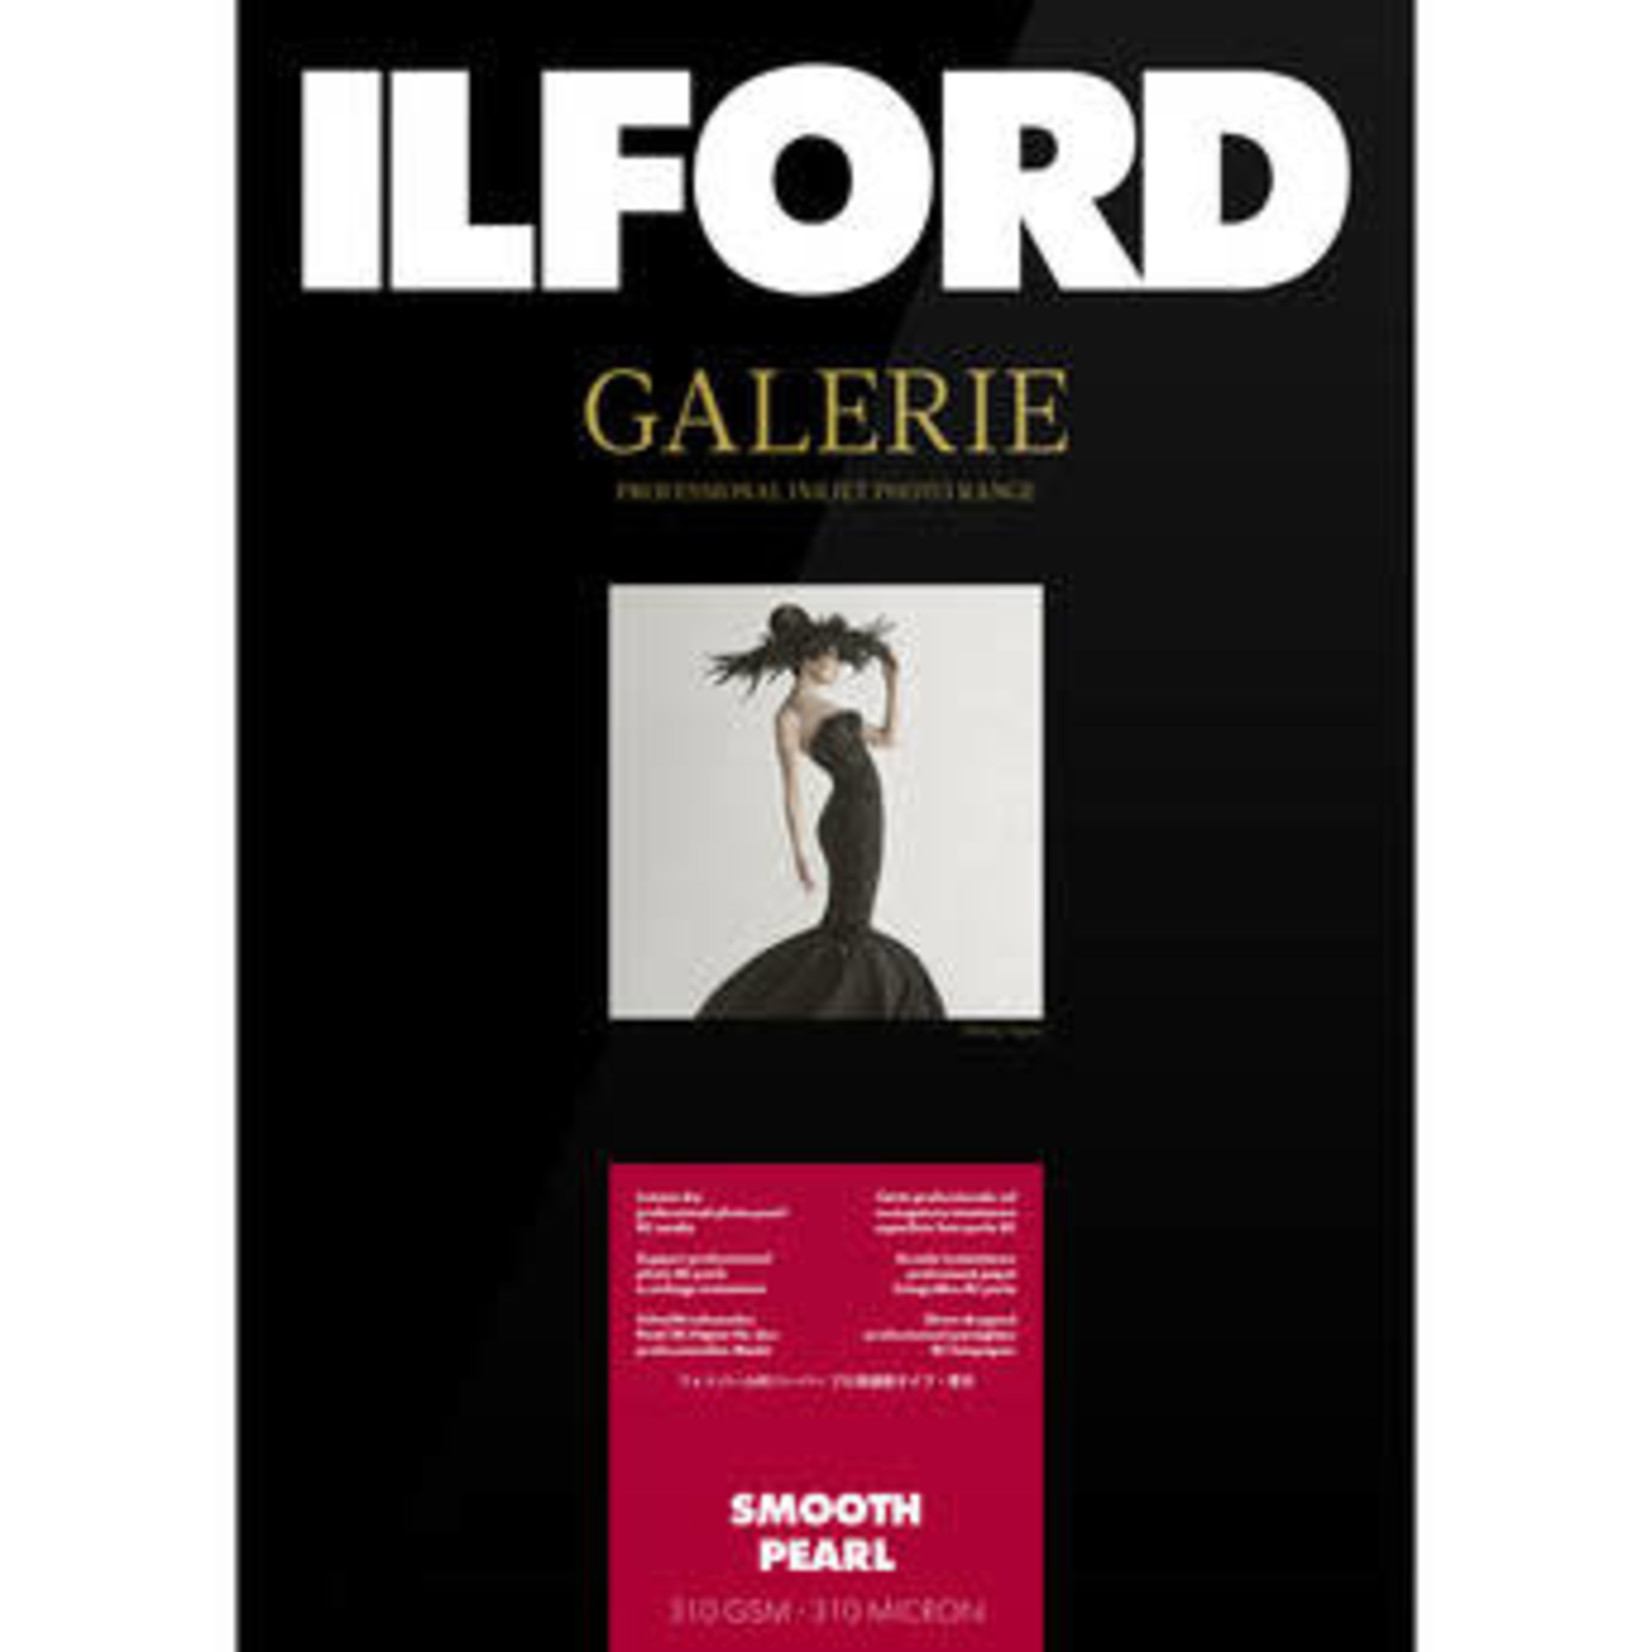 Ilford Galerie Smooth Pearl 5x7 (100 Pack)